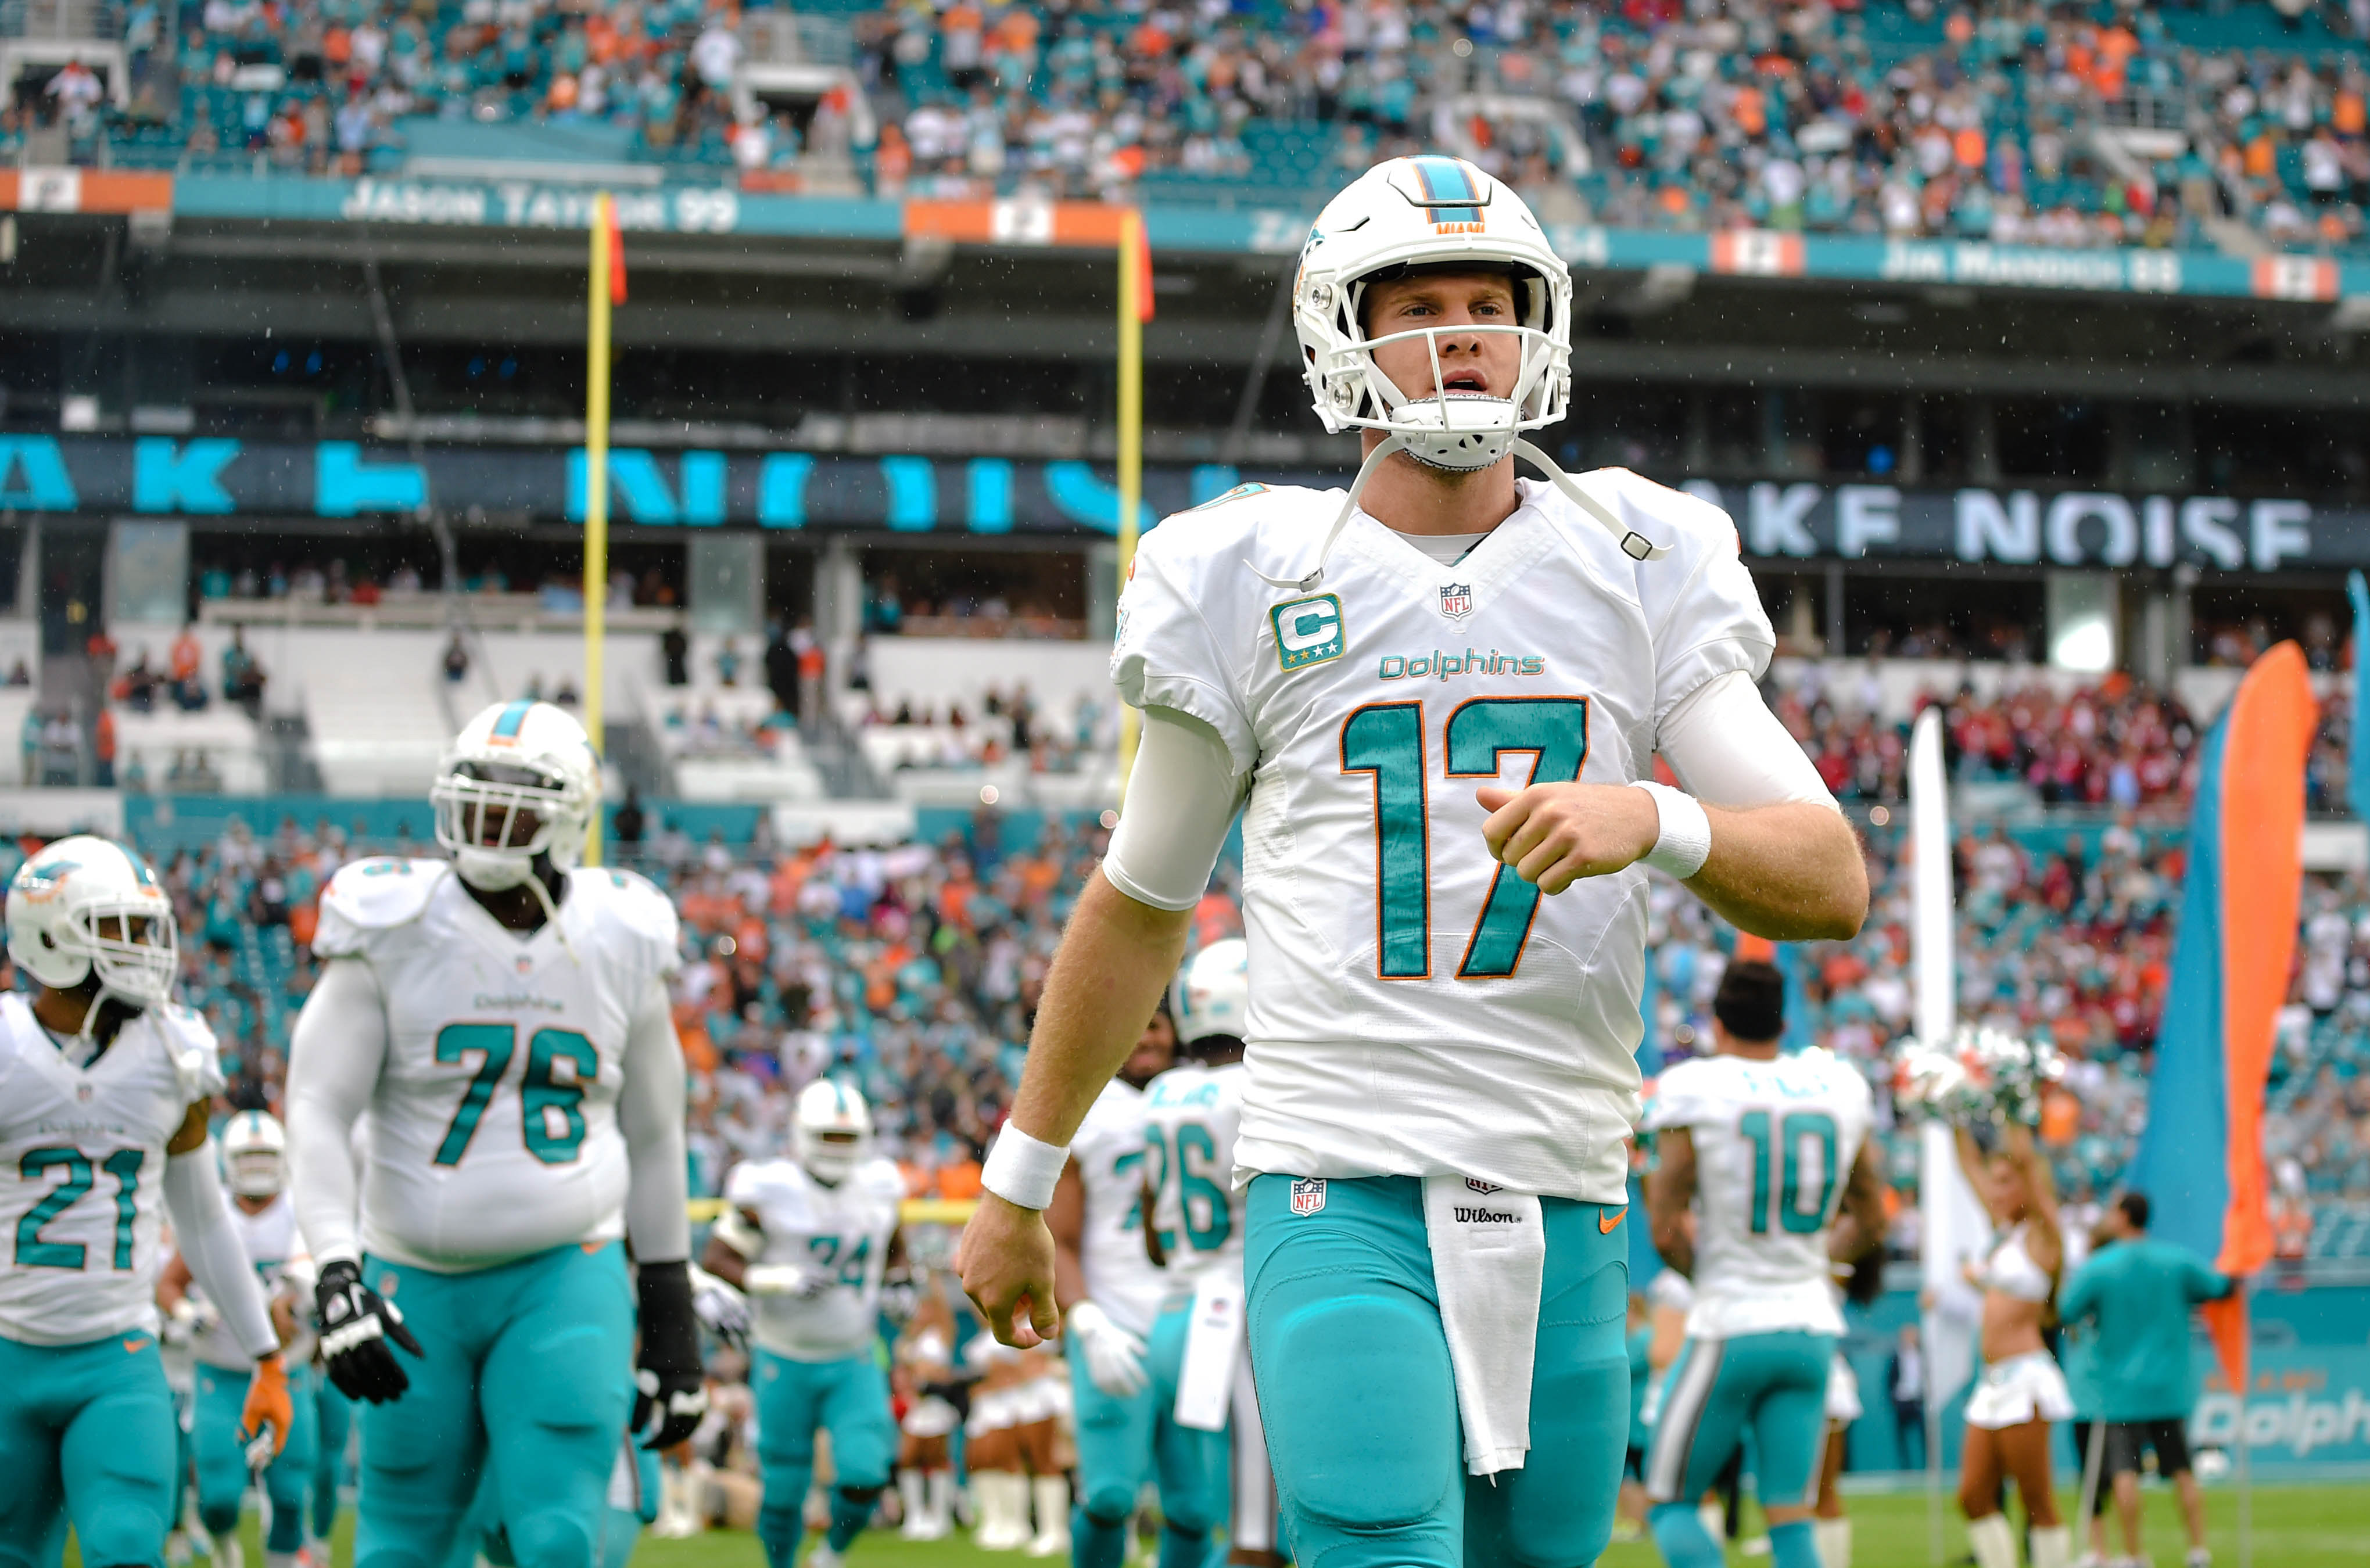 Dec 11, 2016; Miami Gardens, FL, USA; Miami Dolphins quarterback Ryan Tannehill (17) takes the field before a game against the Arizona Cardinals at Hard Rock Stadium. Mandatory Credit: Steve Mitchell-USA TODAY Sports